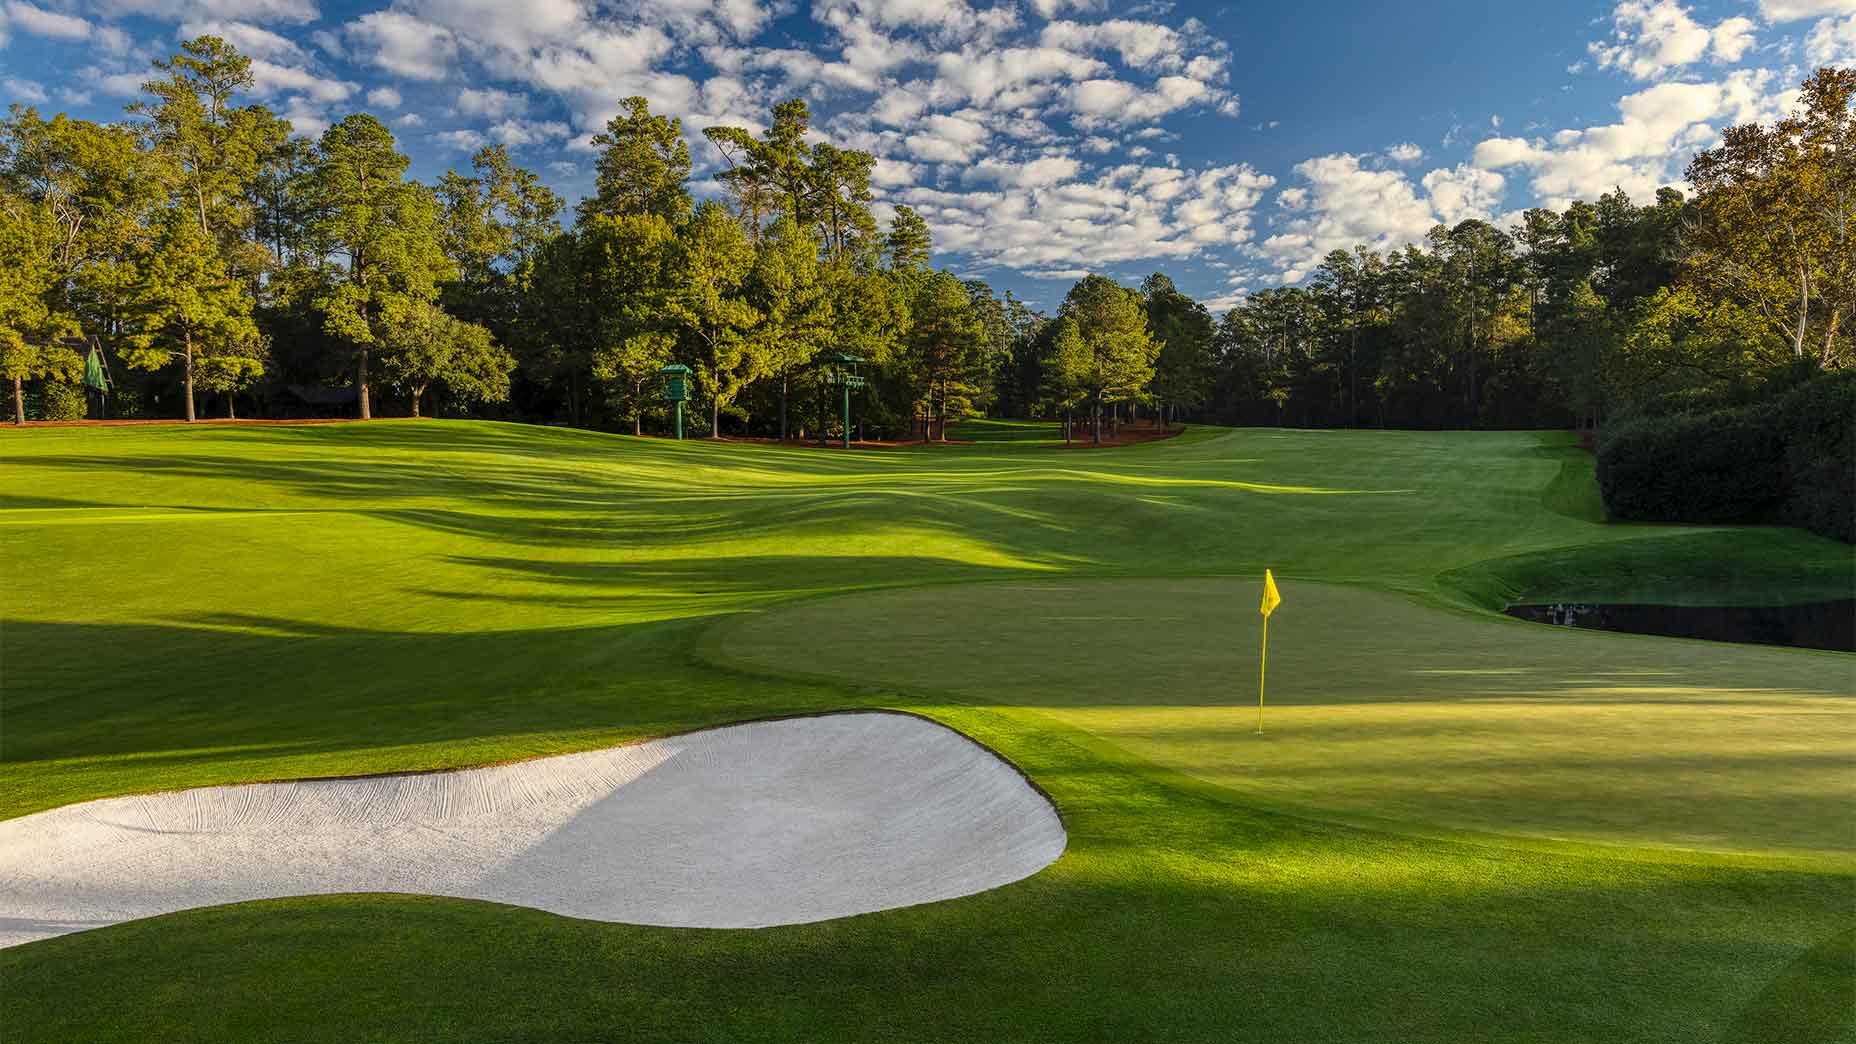 The 11th hole at Augusta National.